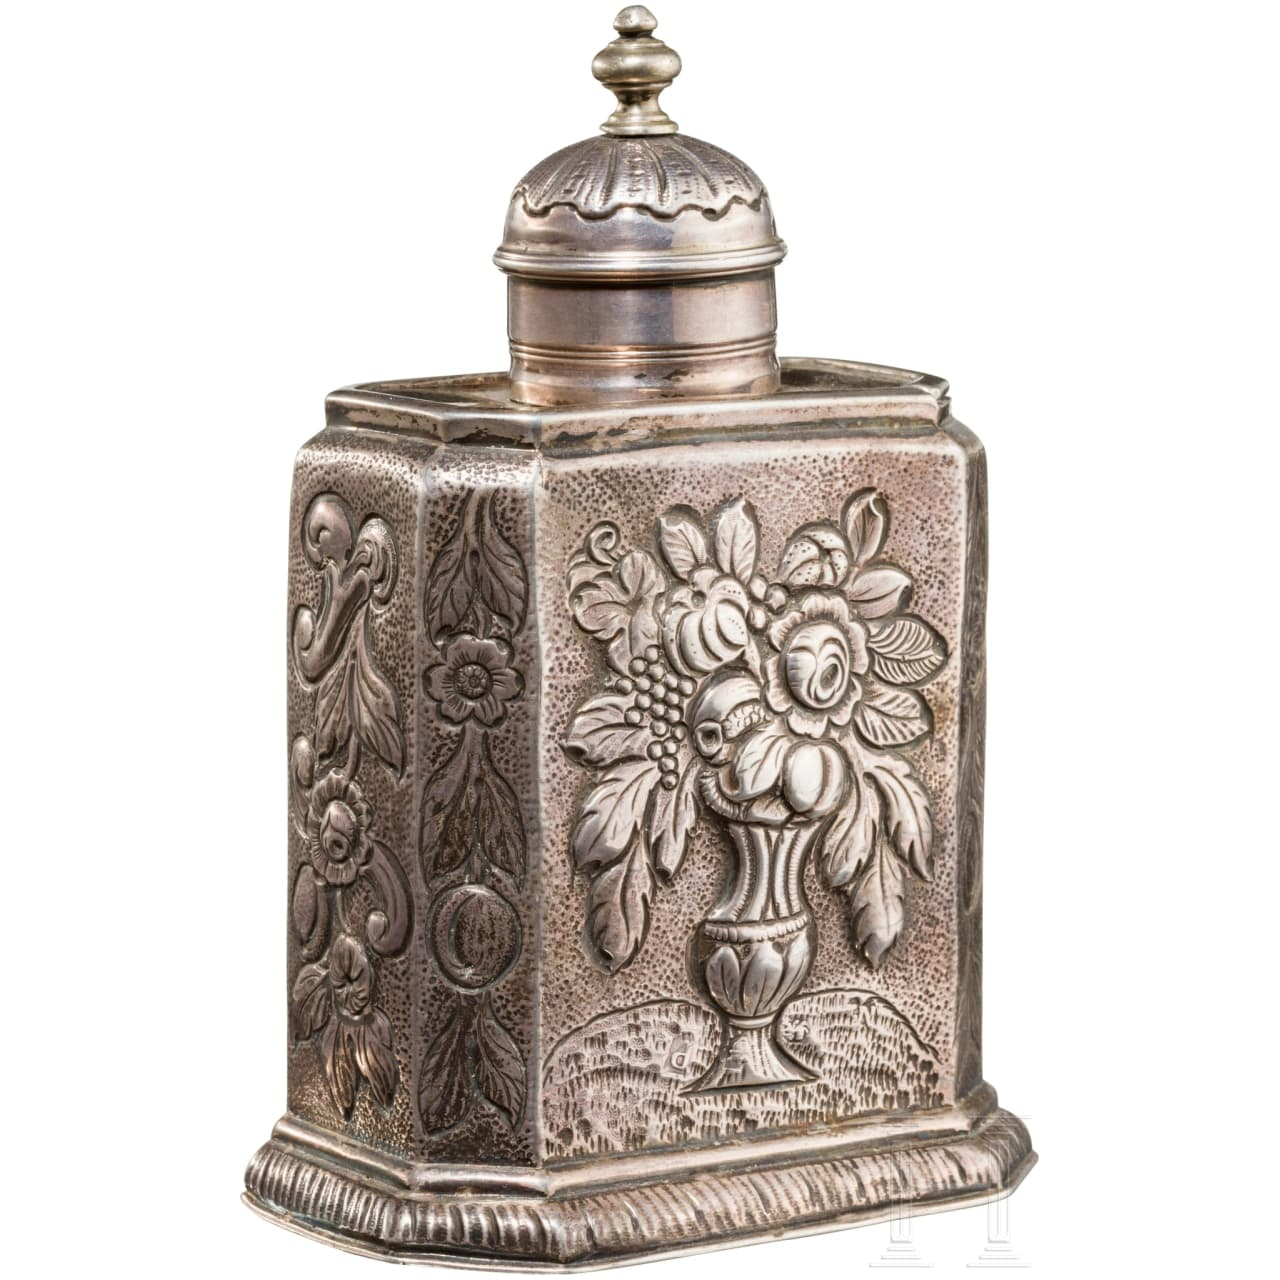 A silver tea caddy, London, 18th century